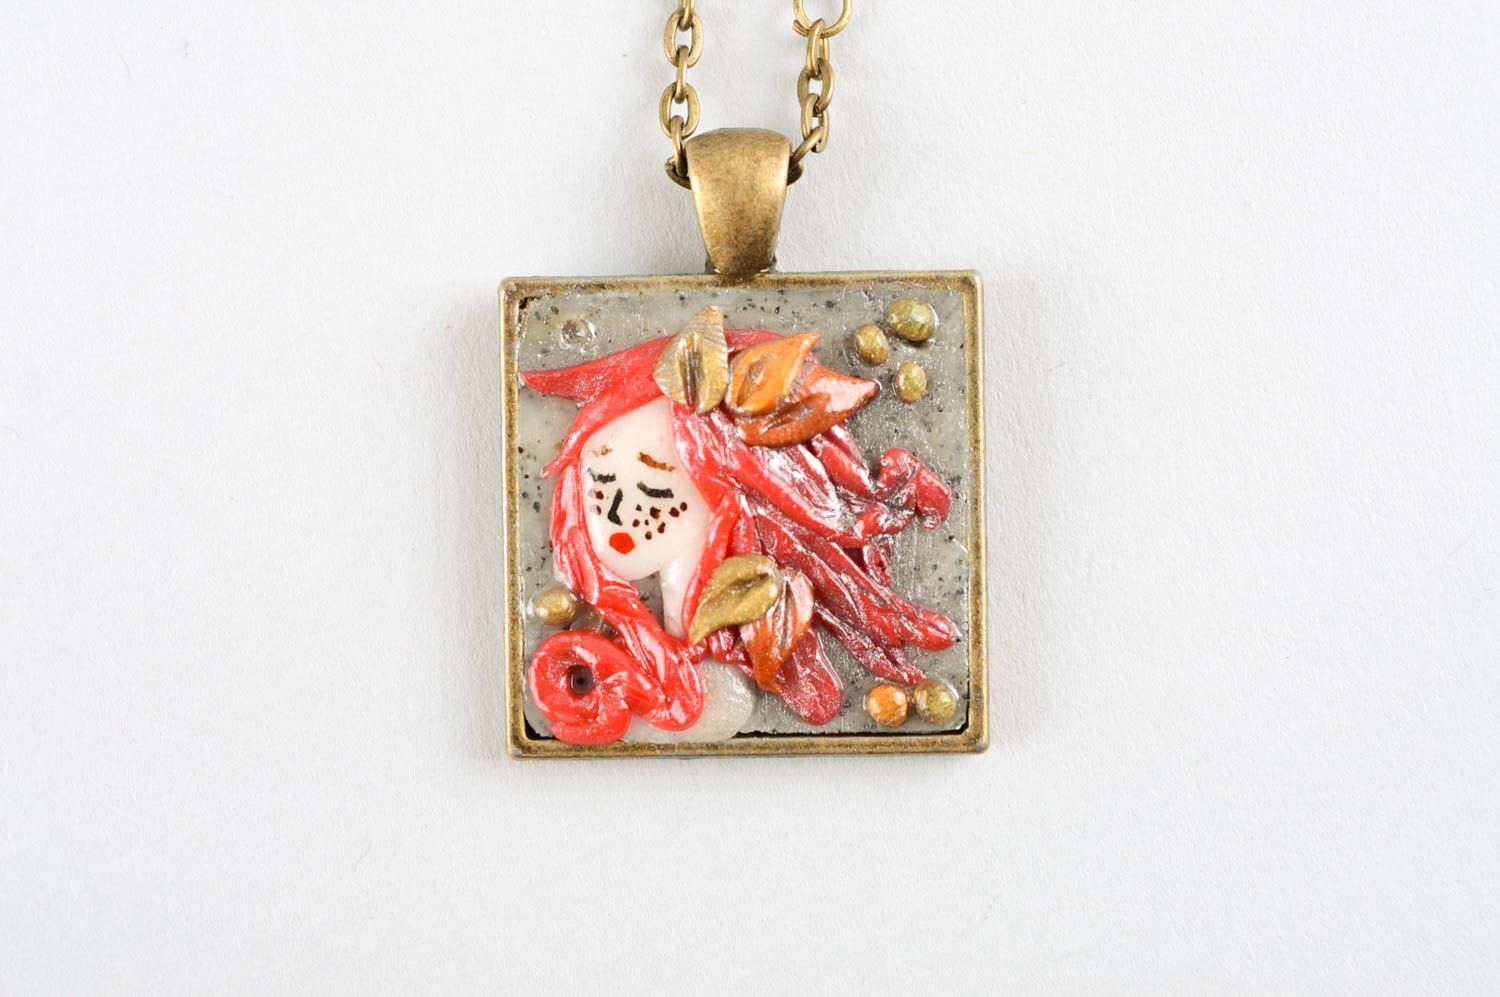 Handmade jewelry polymer clay pendant necklace fashion accessories for women photo 3